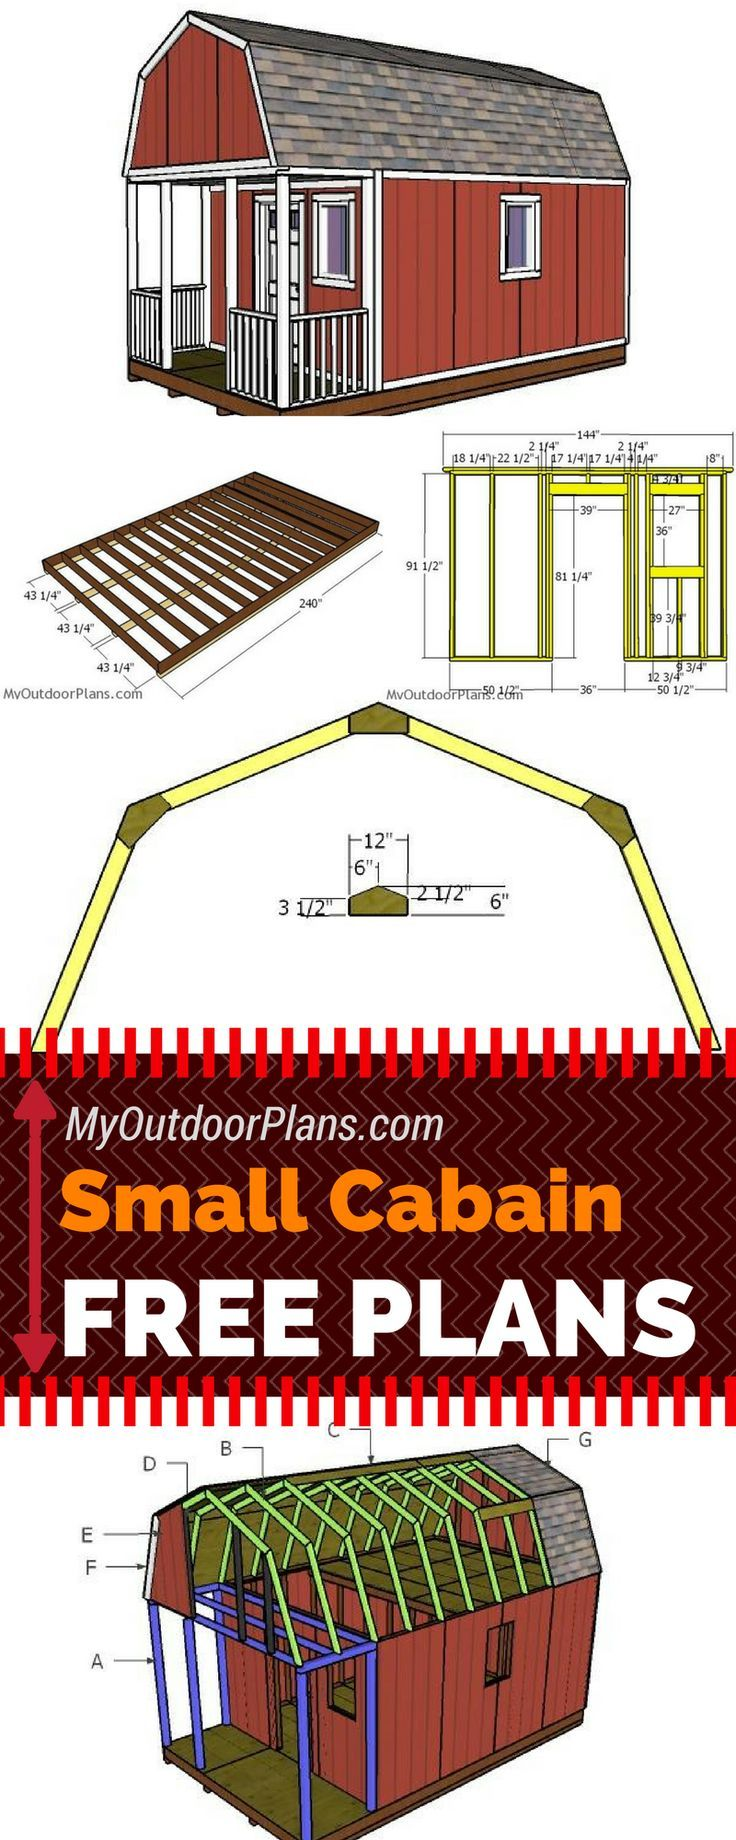 12x20 Small Cabin Plans DIY Hunting Shack MyOutdoorPlans